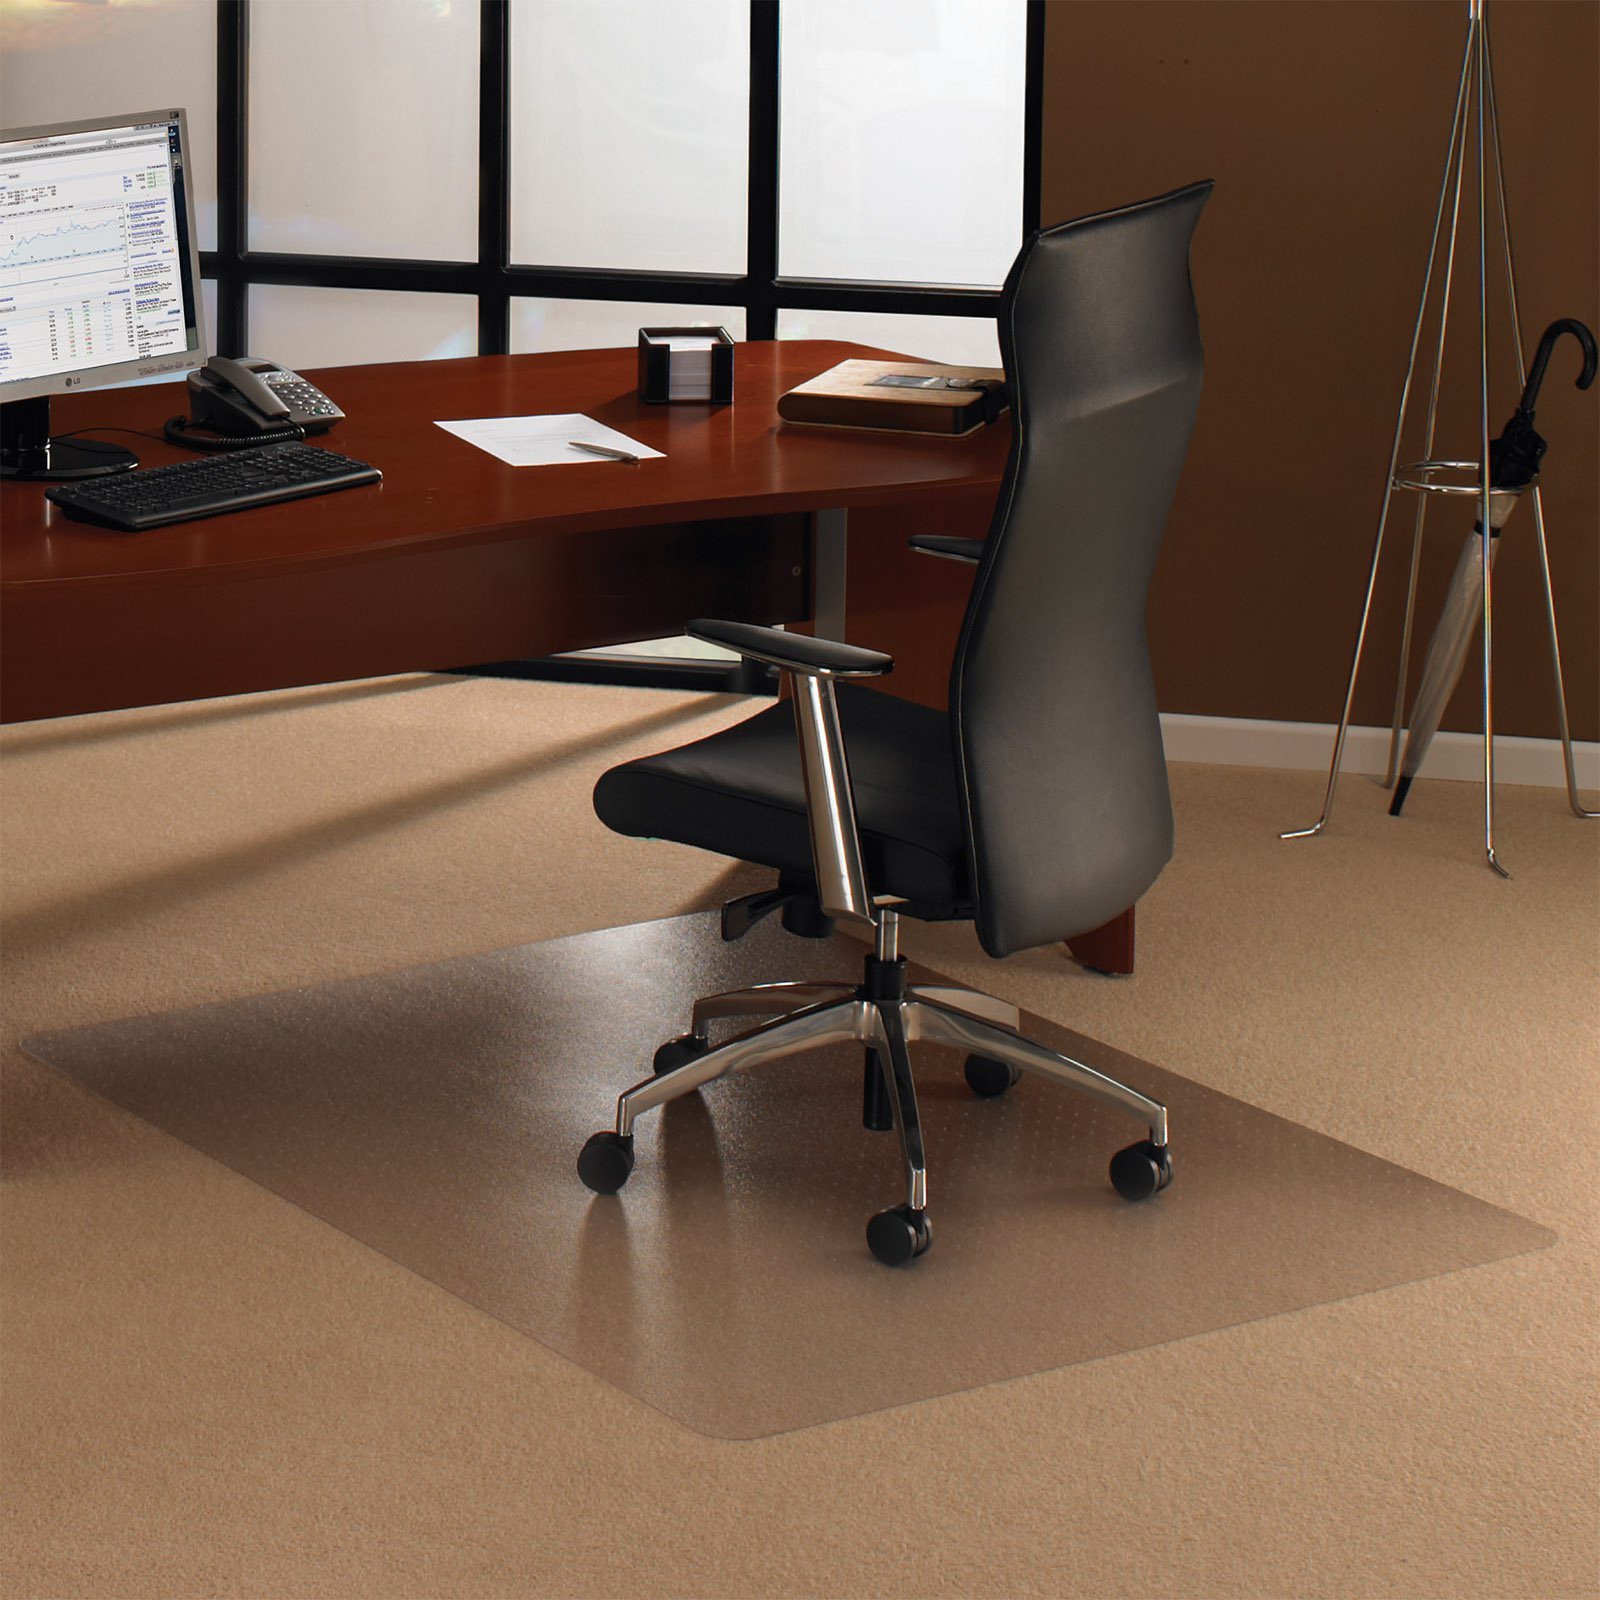 Floortex Ecotex Rectangular Chair Mat for Carpet